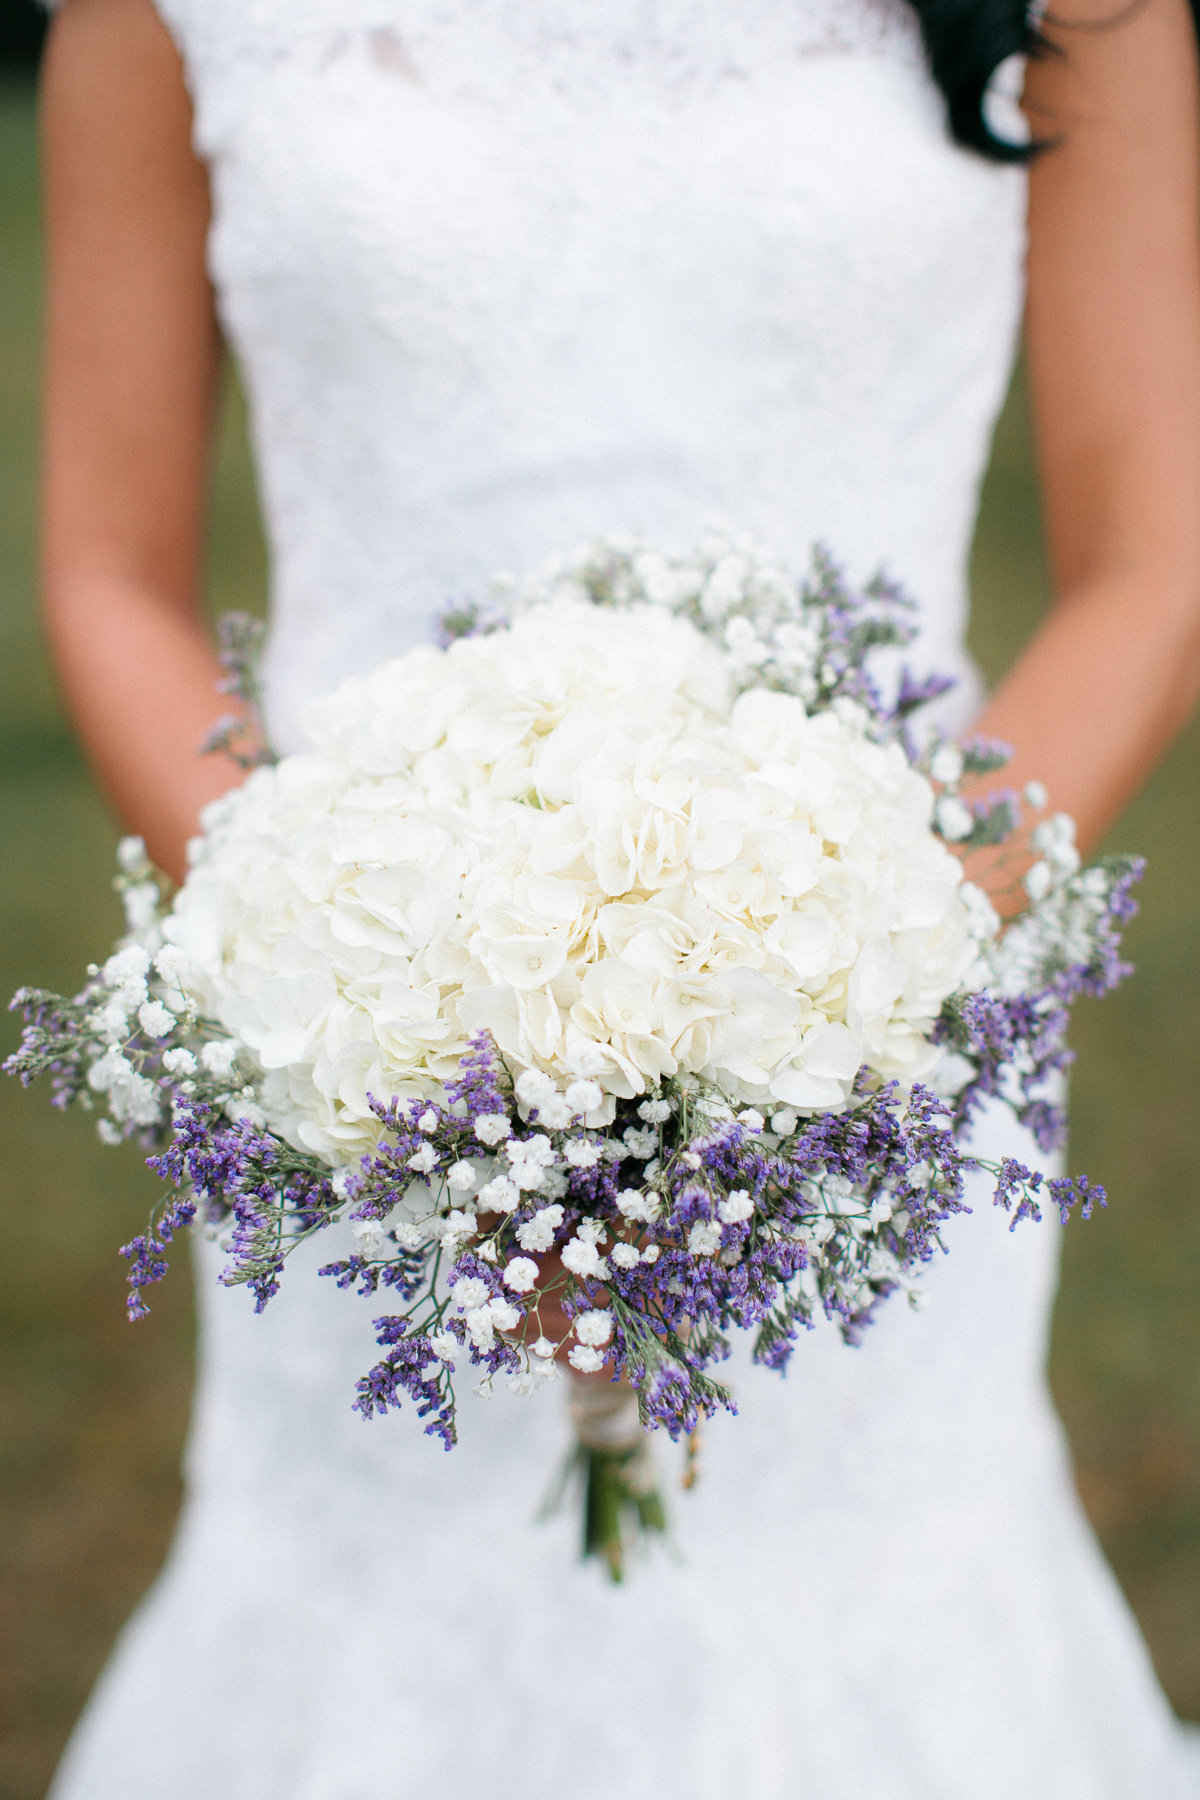 Lisa Carried A Rustic Biedermeir Style Bouquet Composed Of